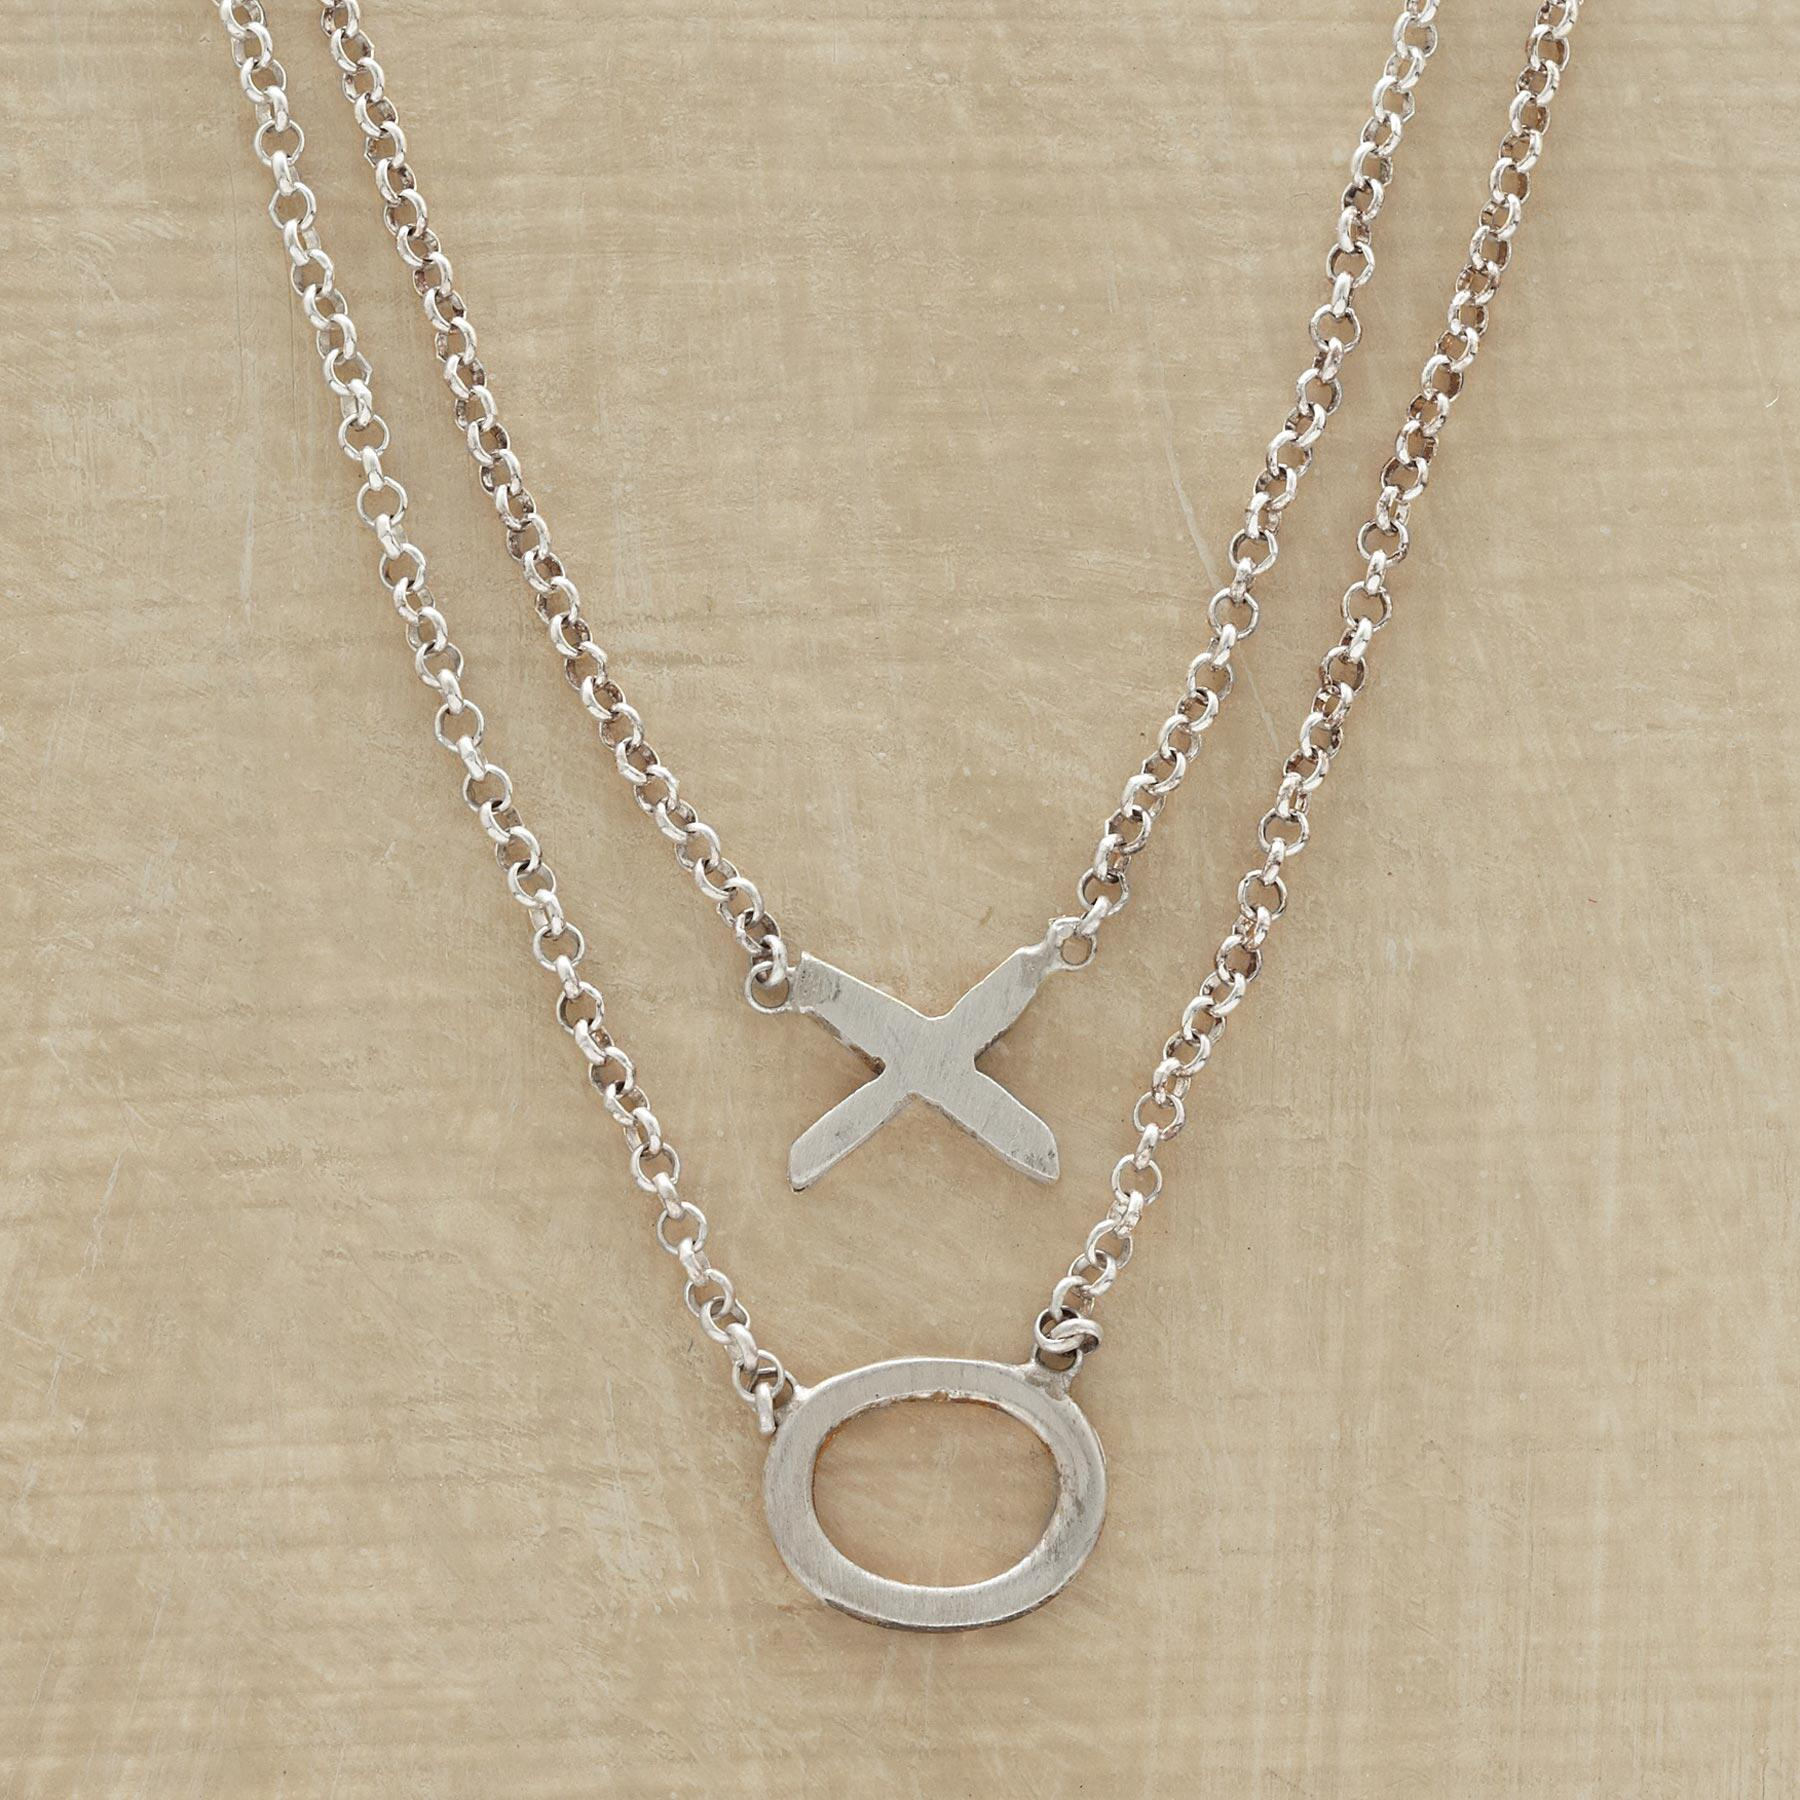 X O NECKLACES: View 1